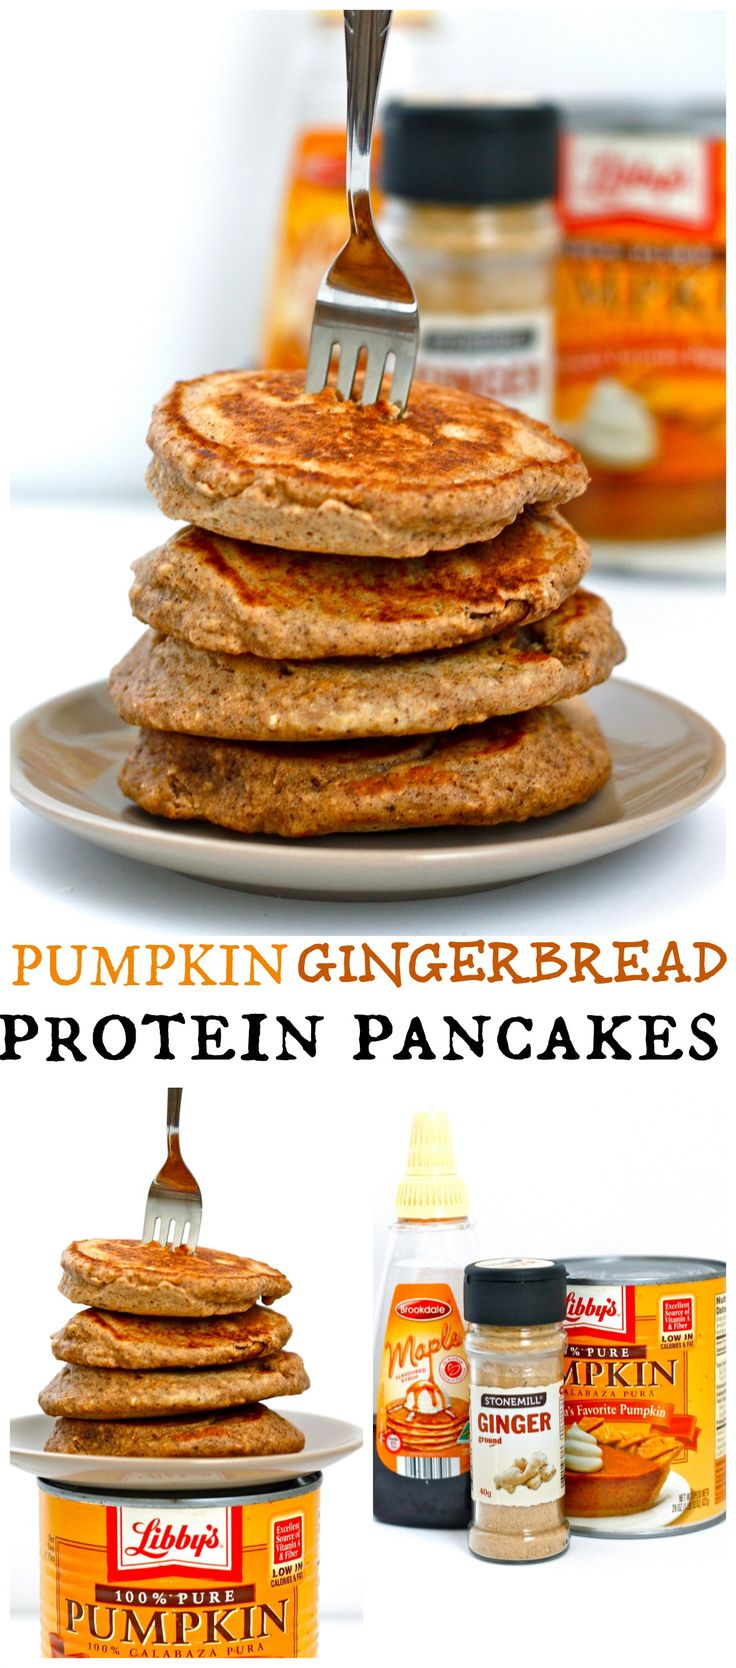 Pumpkin Gingerbread Protein Pancakes - using coconut flour and protein powder. Excellent recipe!!!